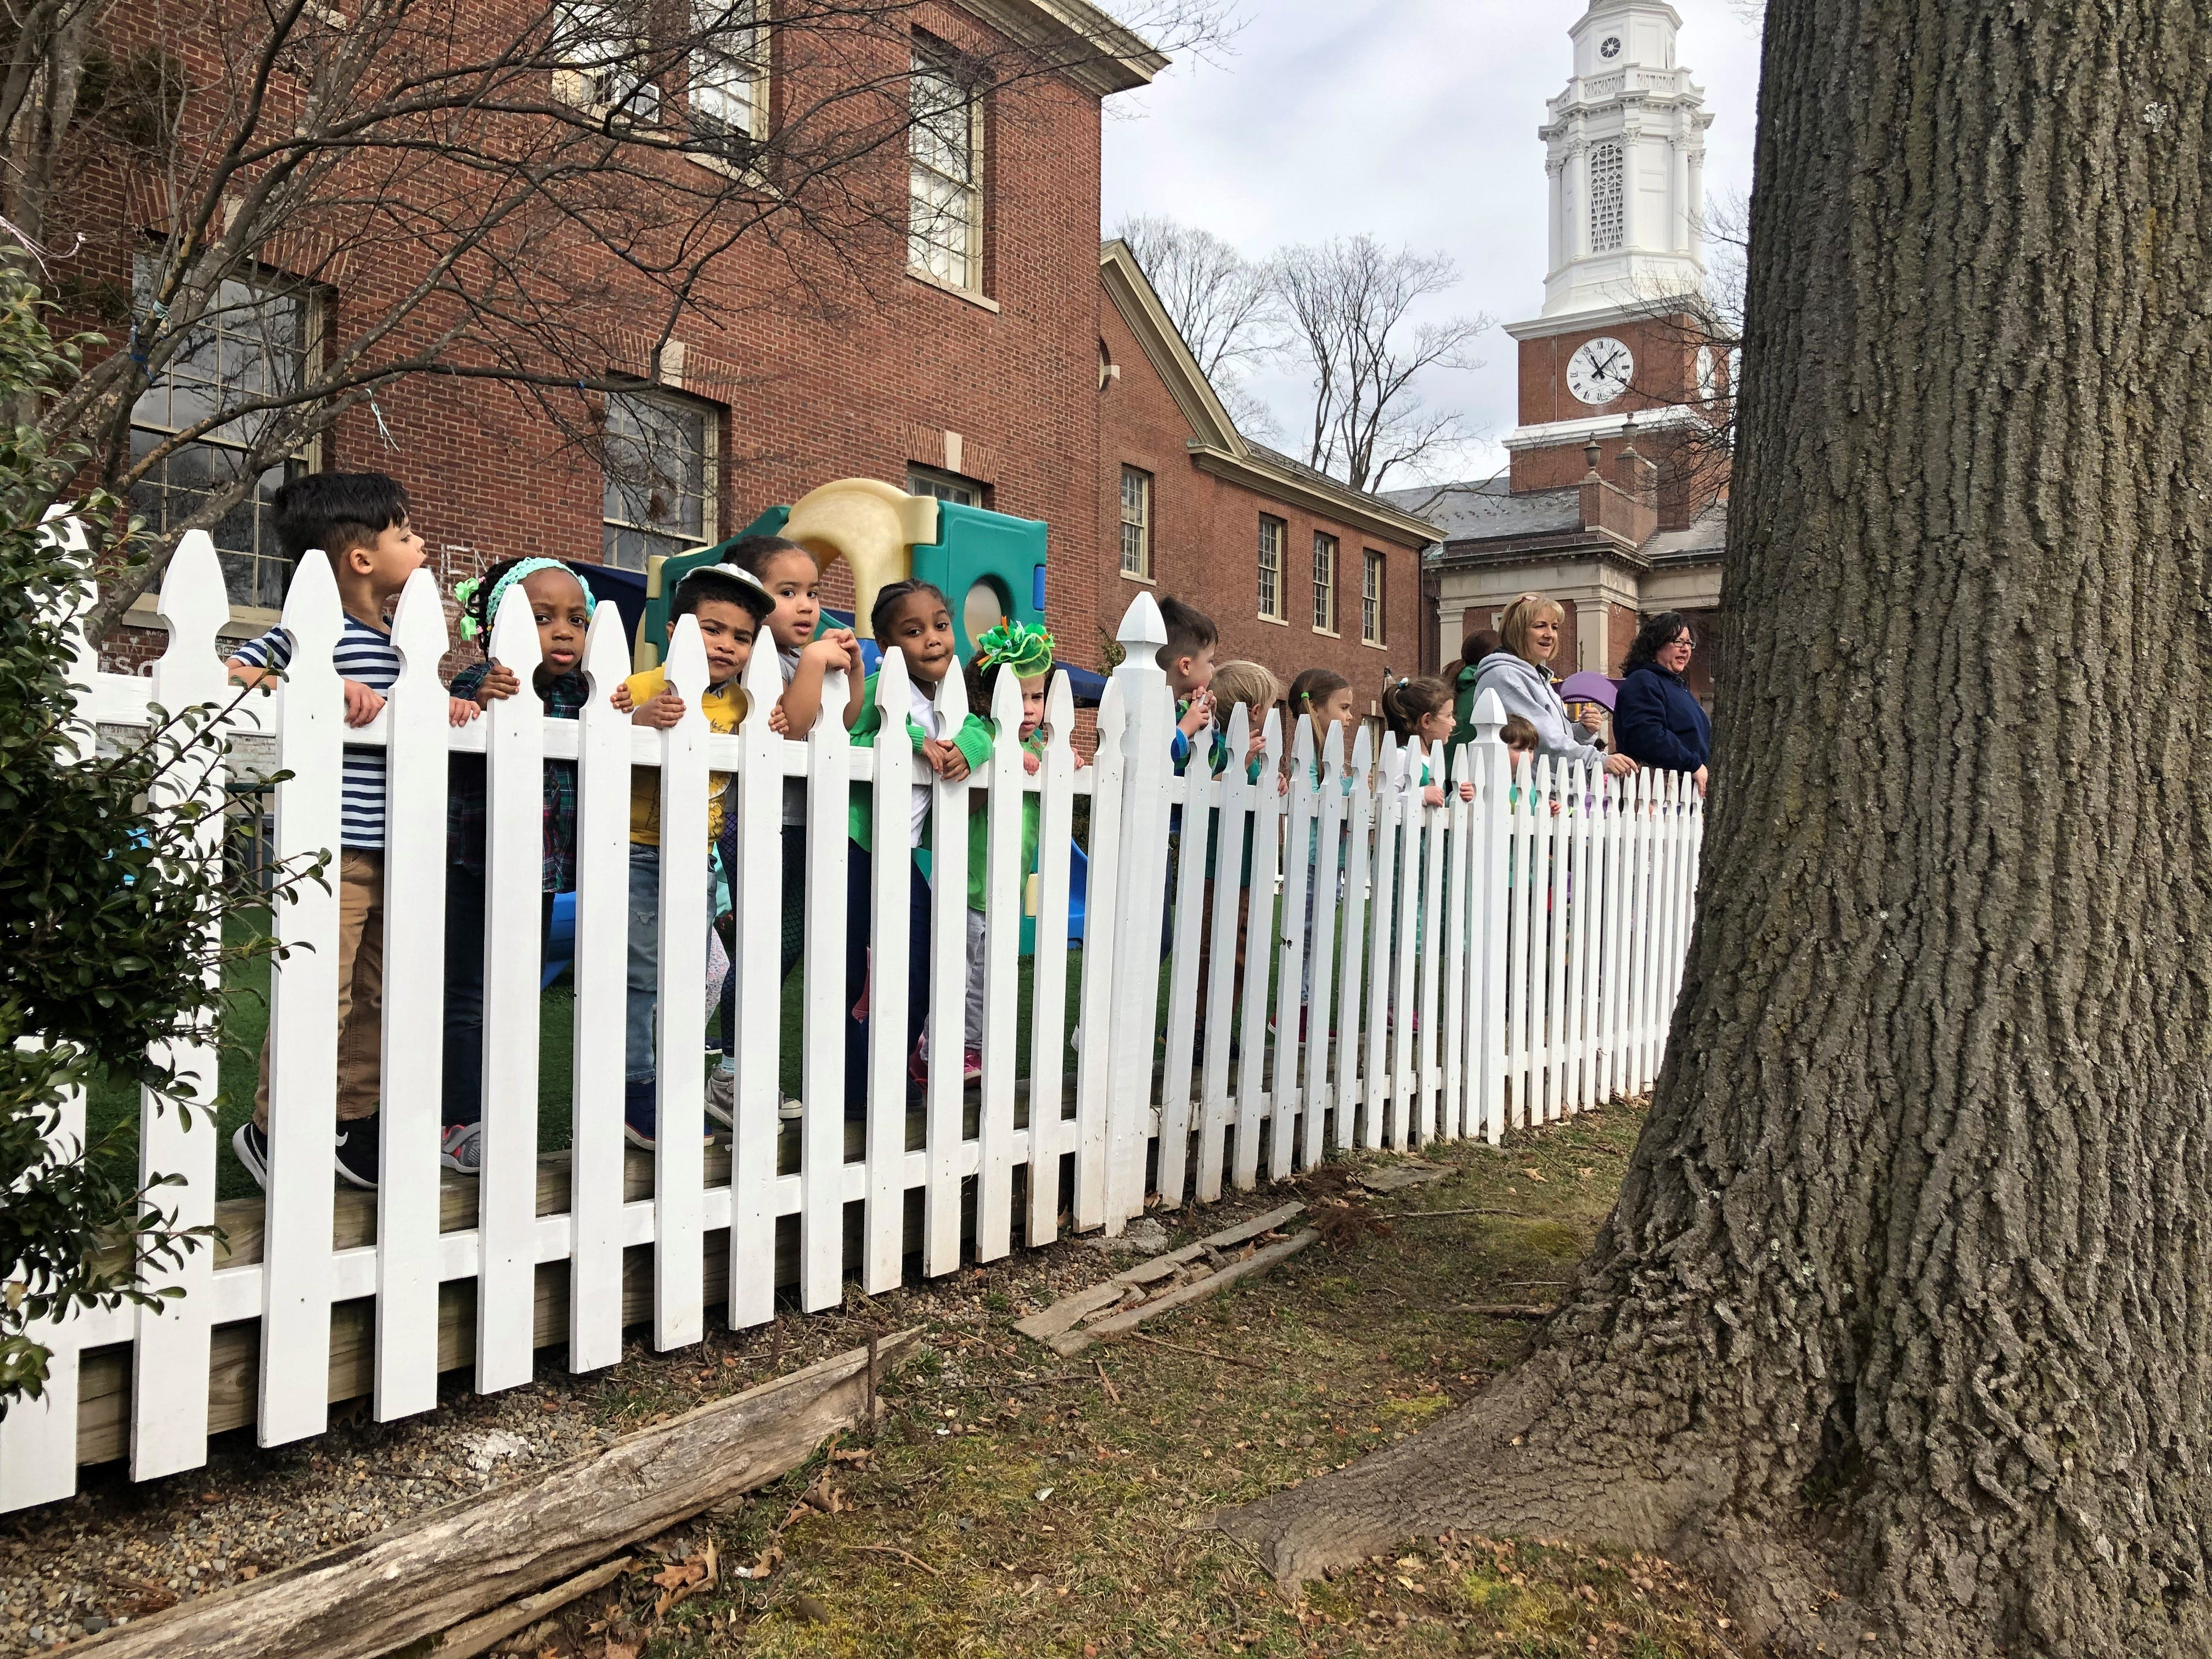 Nursery school children in Montclair watching Montclair High School students march by on a Climate Strike. March 15, 2019.